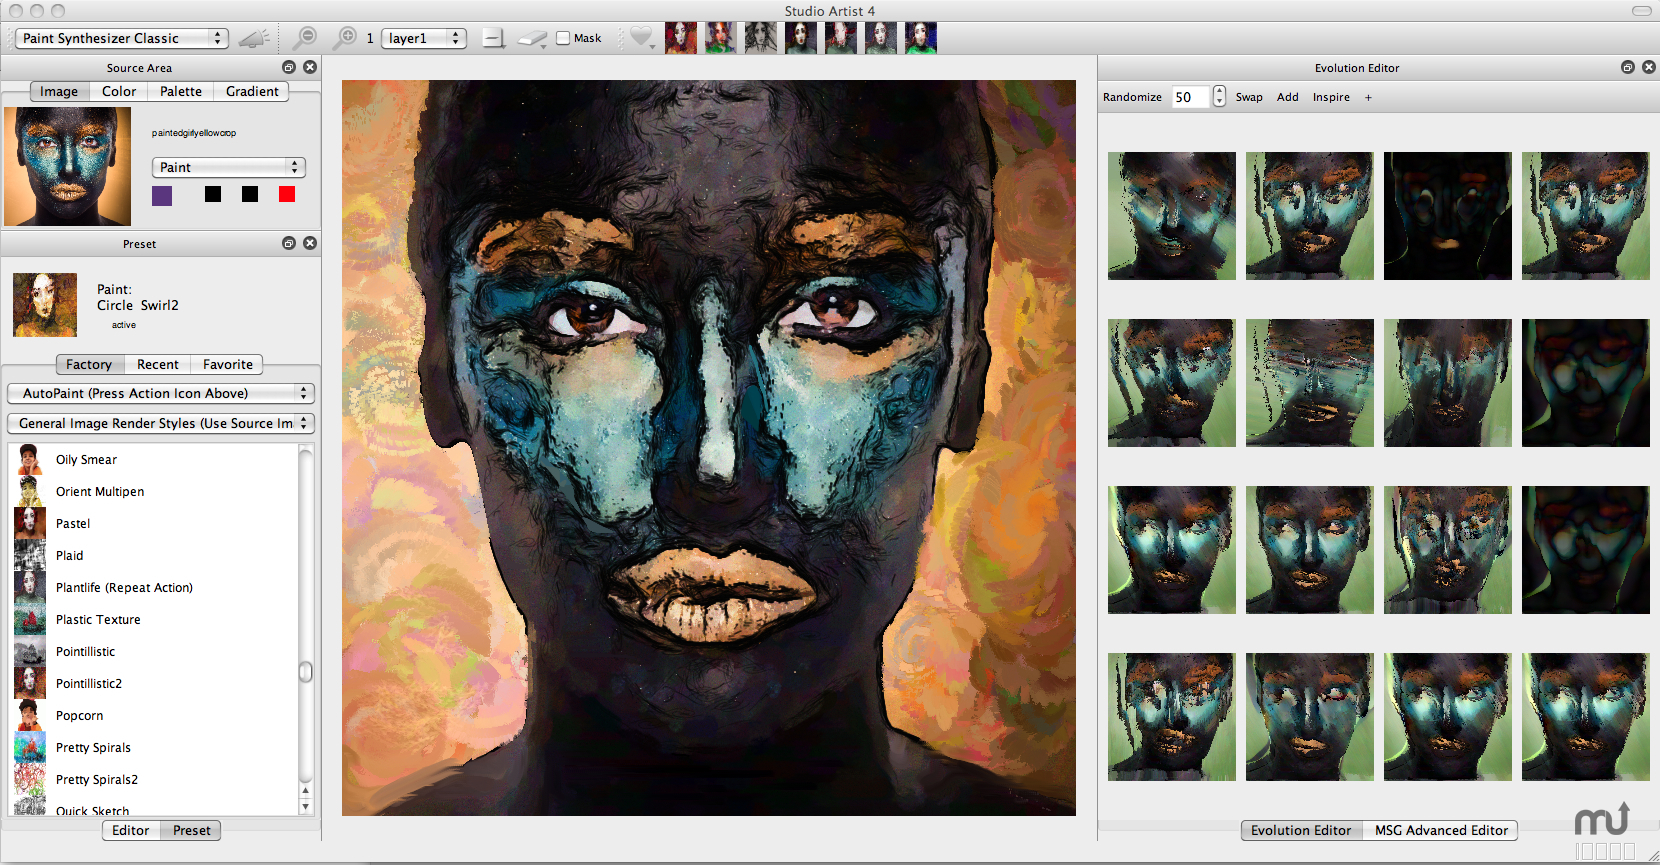 Screenshot 1 for Studio Artist